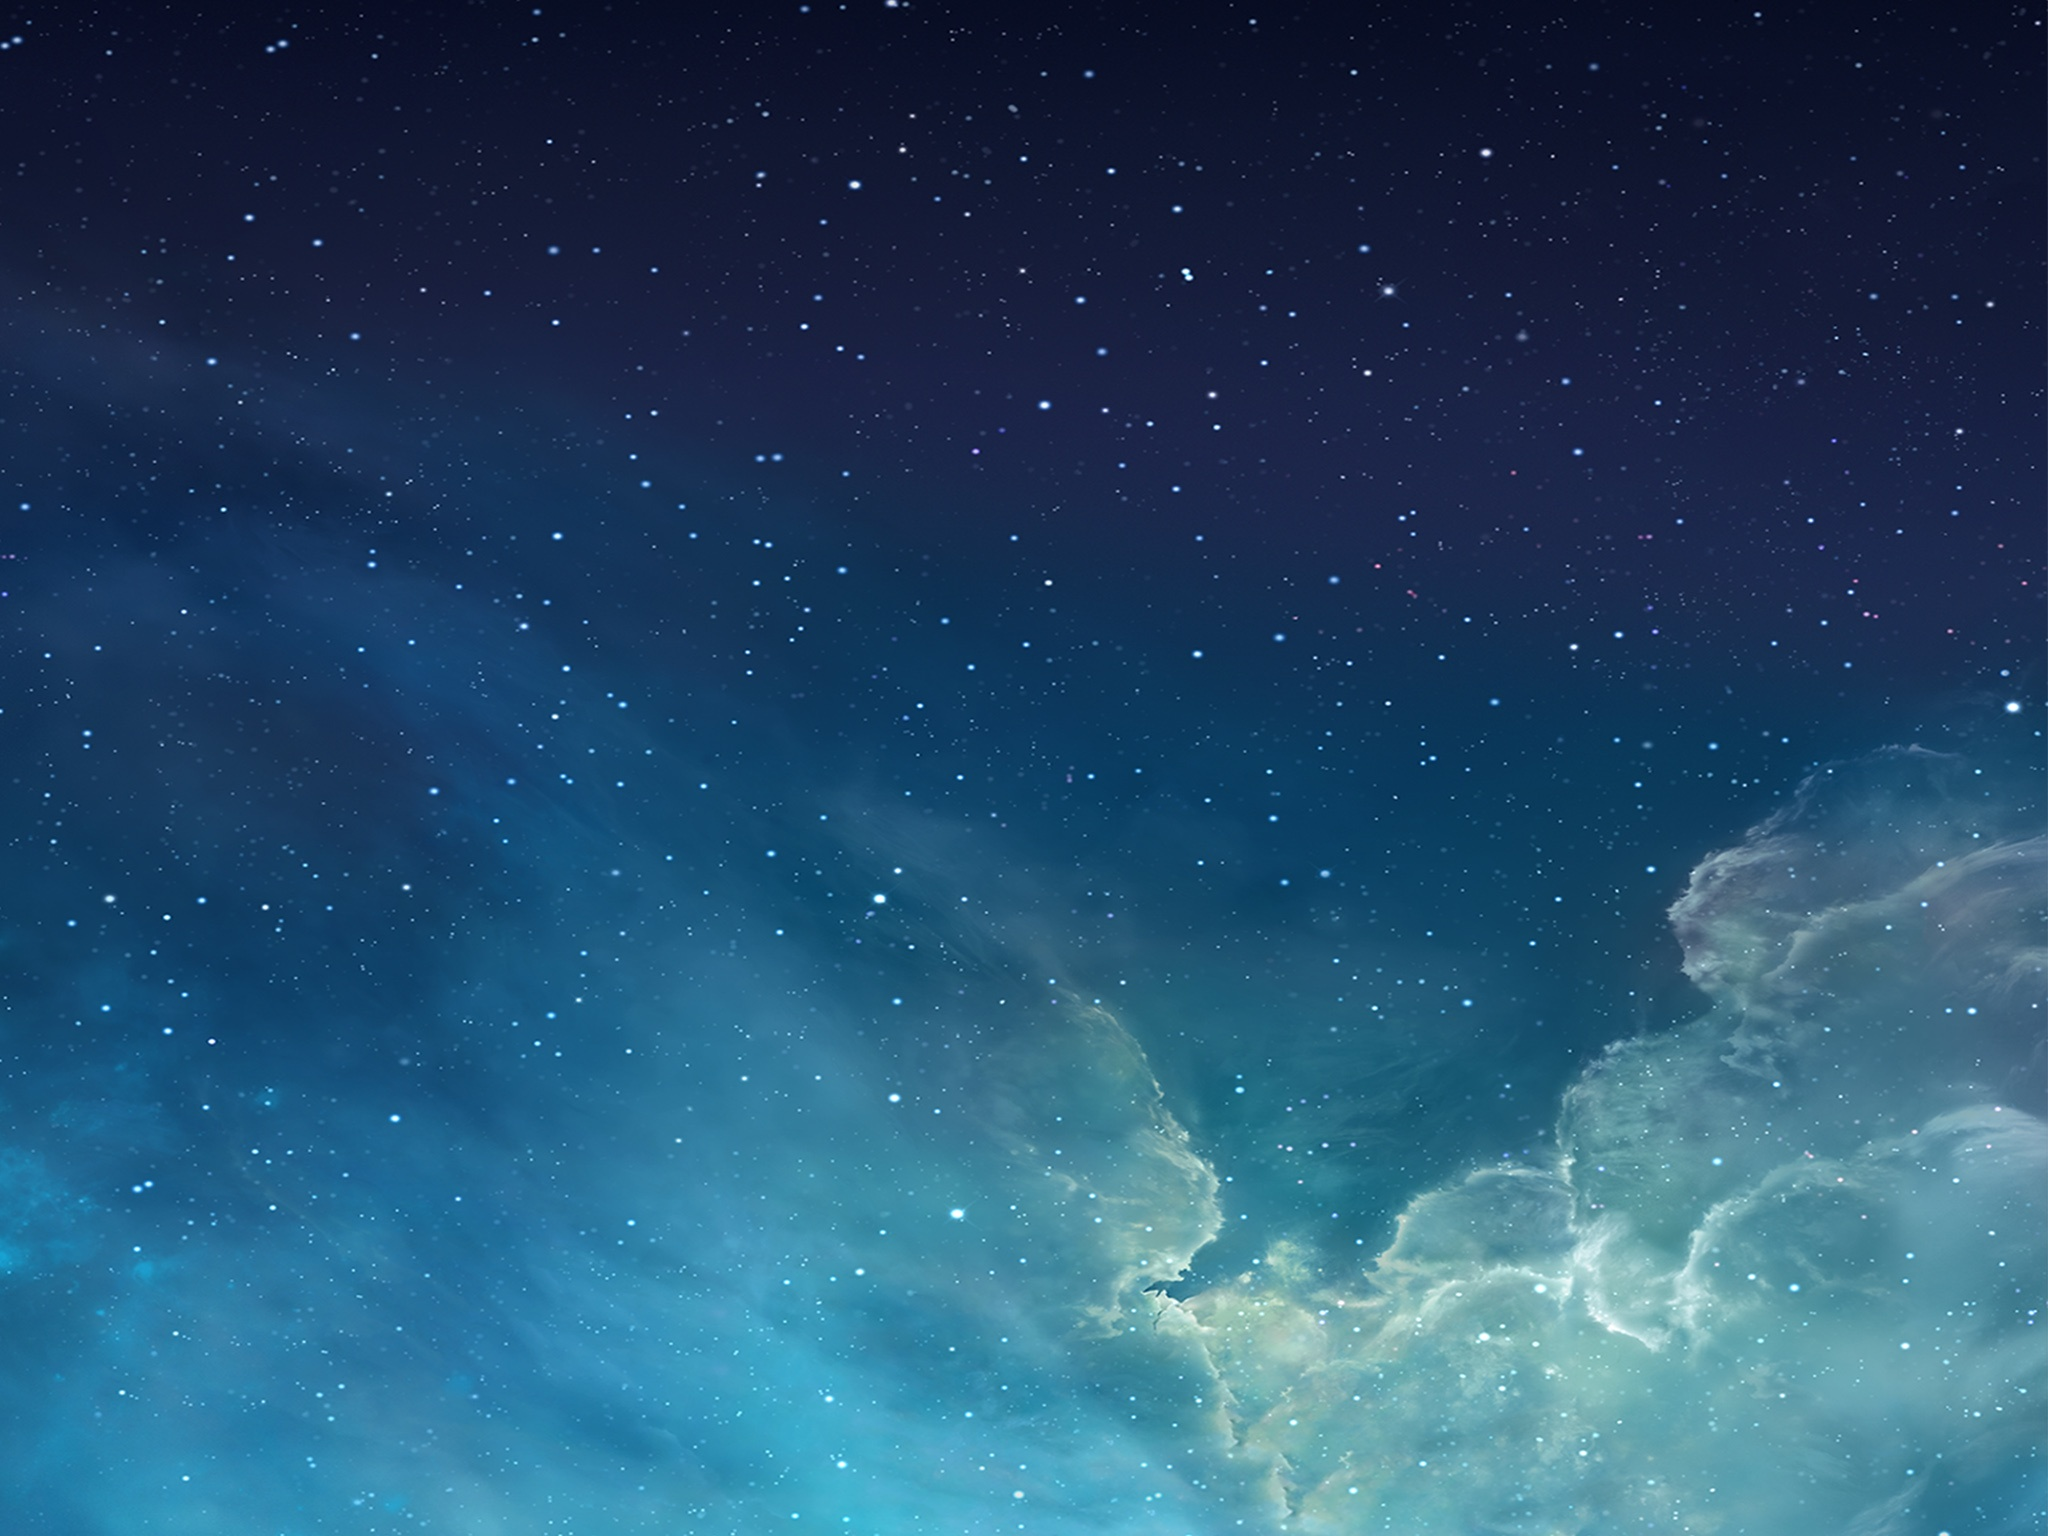 iOS 7 Galaxy Wallpapers HD Wallpapers 2048x1536